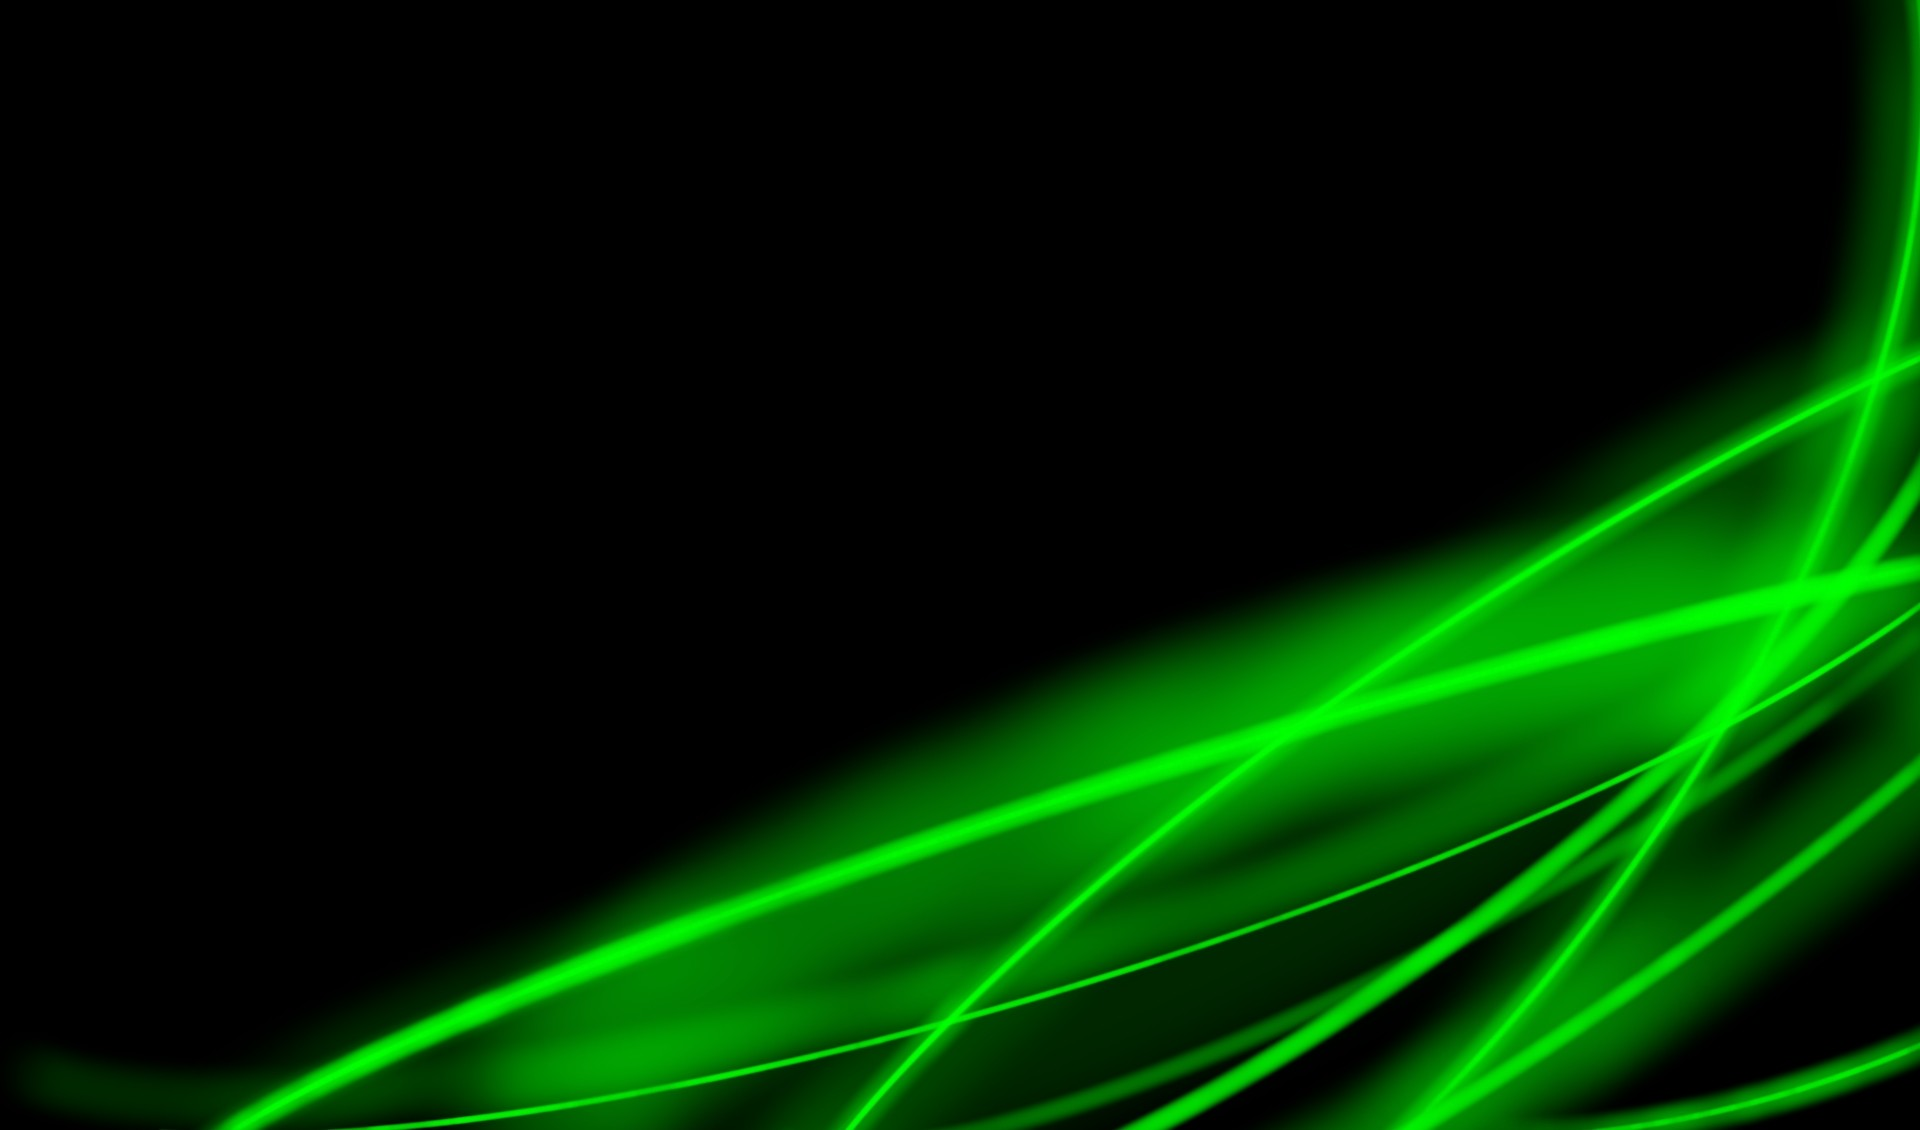 Black And Neon Green Wallpapers HD Wallpapers px 350.08 KB